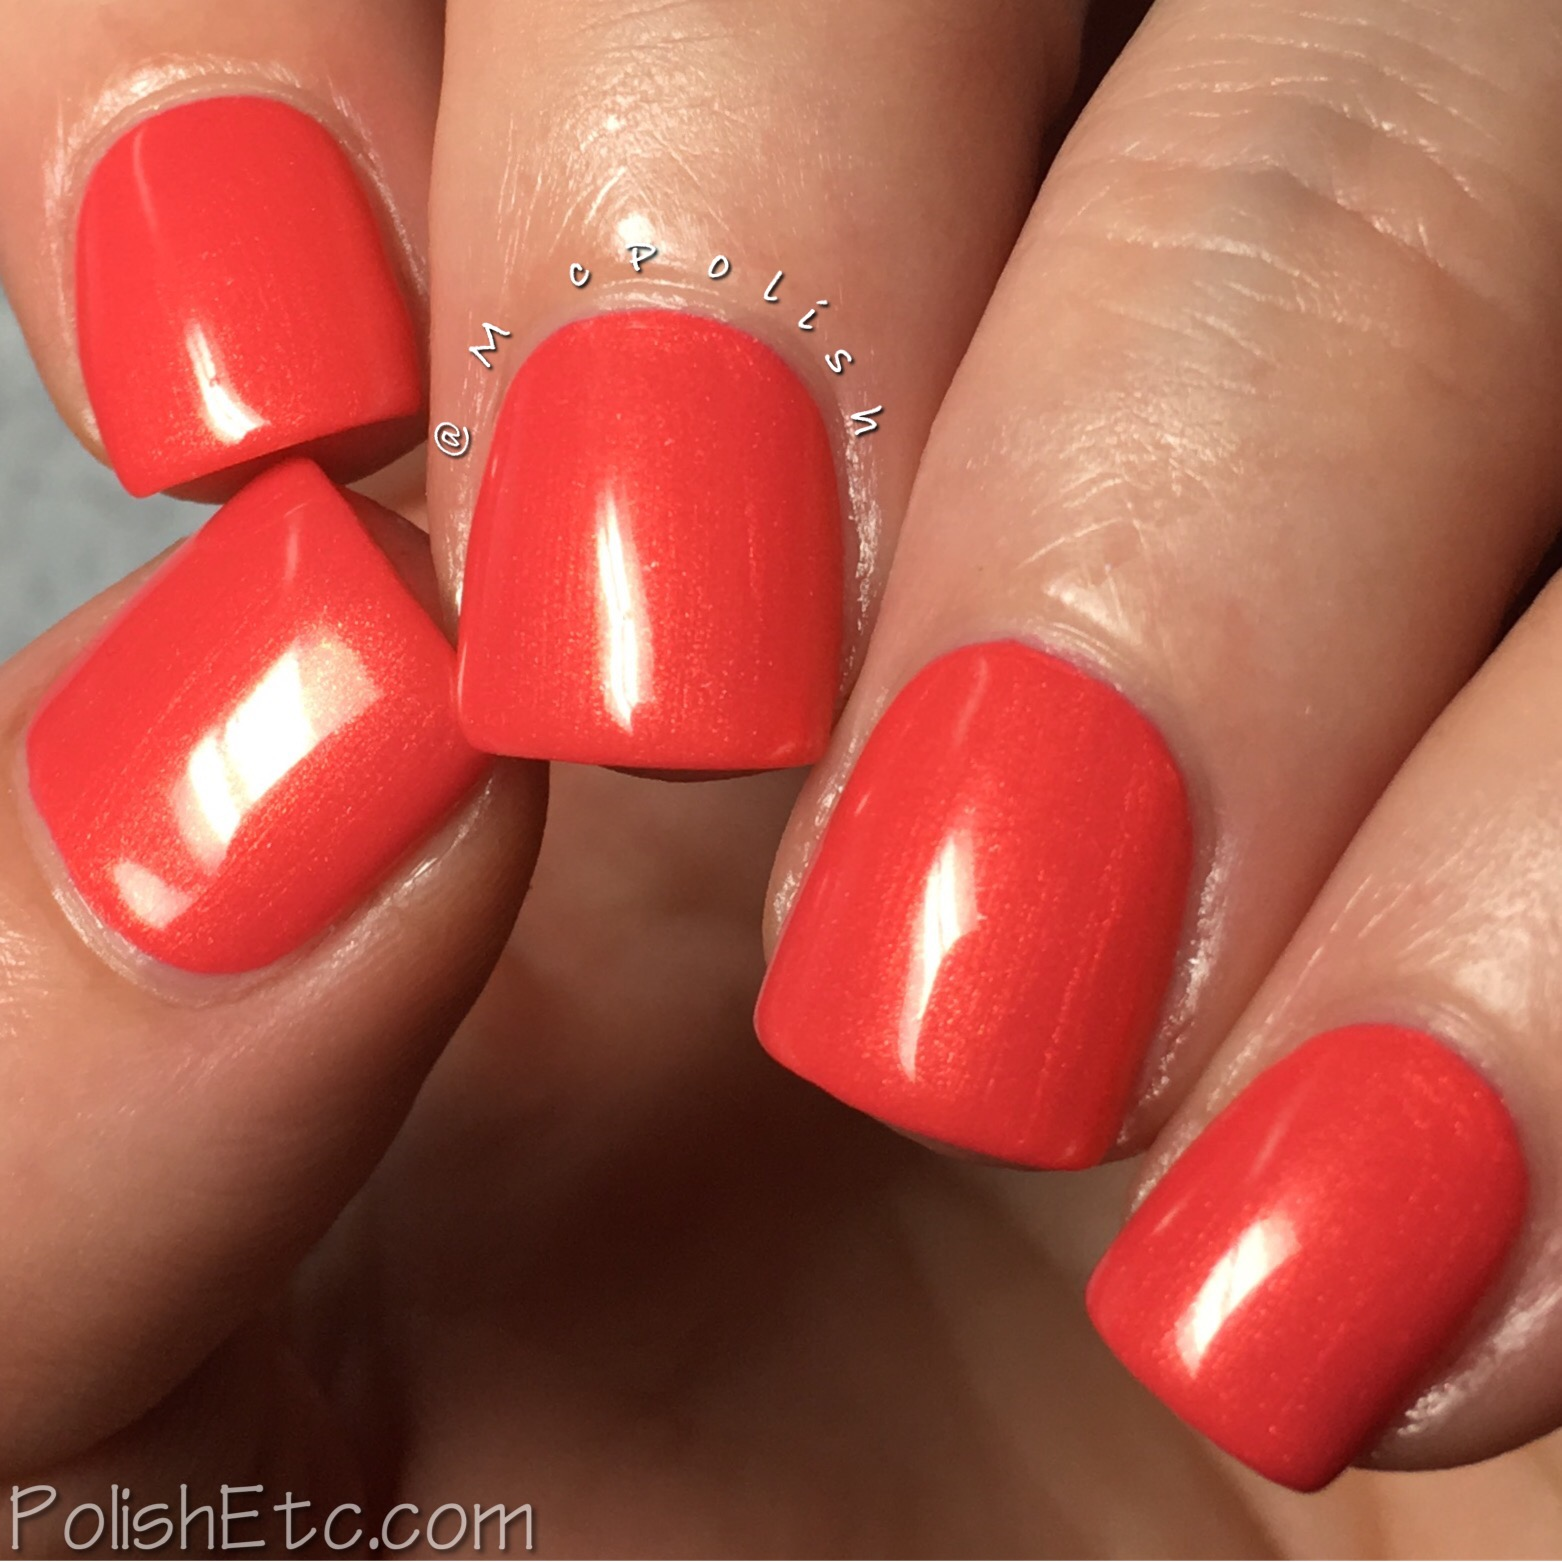 Native War Paints - Copper Beach Trio - McPolish - Copper Sunset